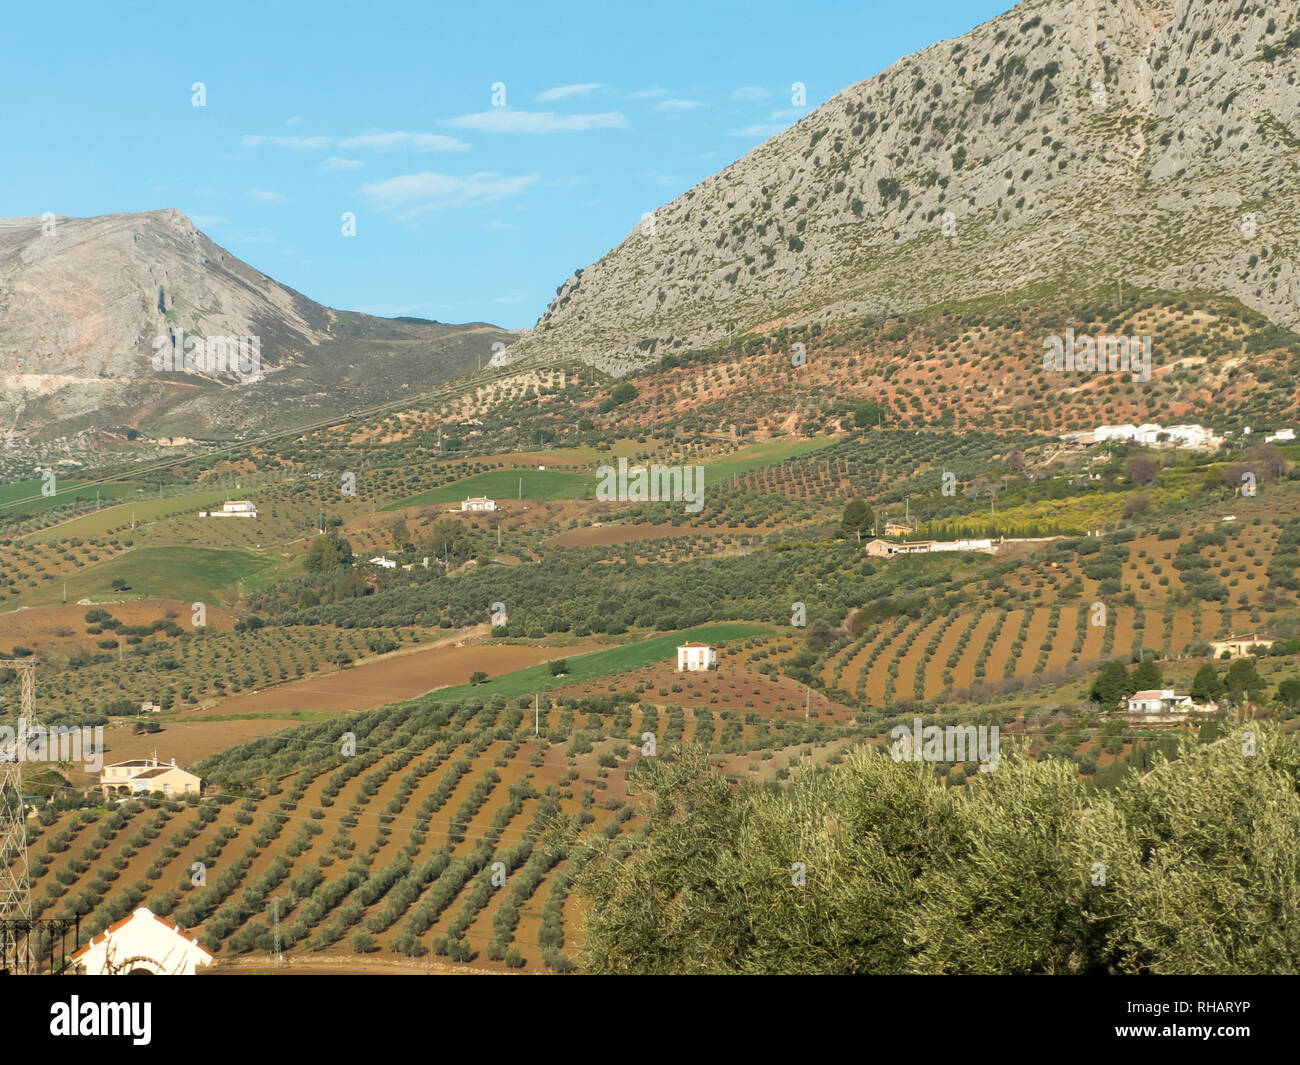 Andalucia in Spain: Cultivated fields of olive, citrus and almond near the village of Valle de Abdalajis - Stock Image